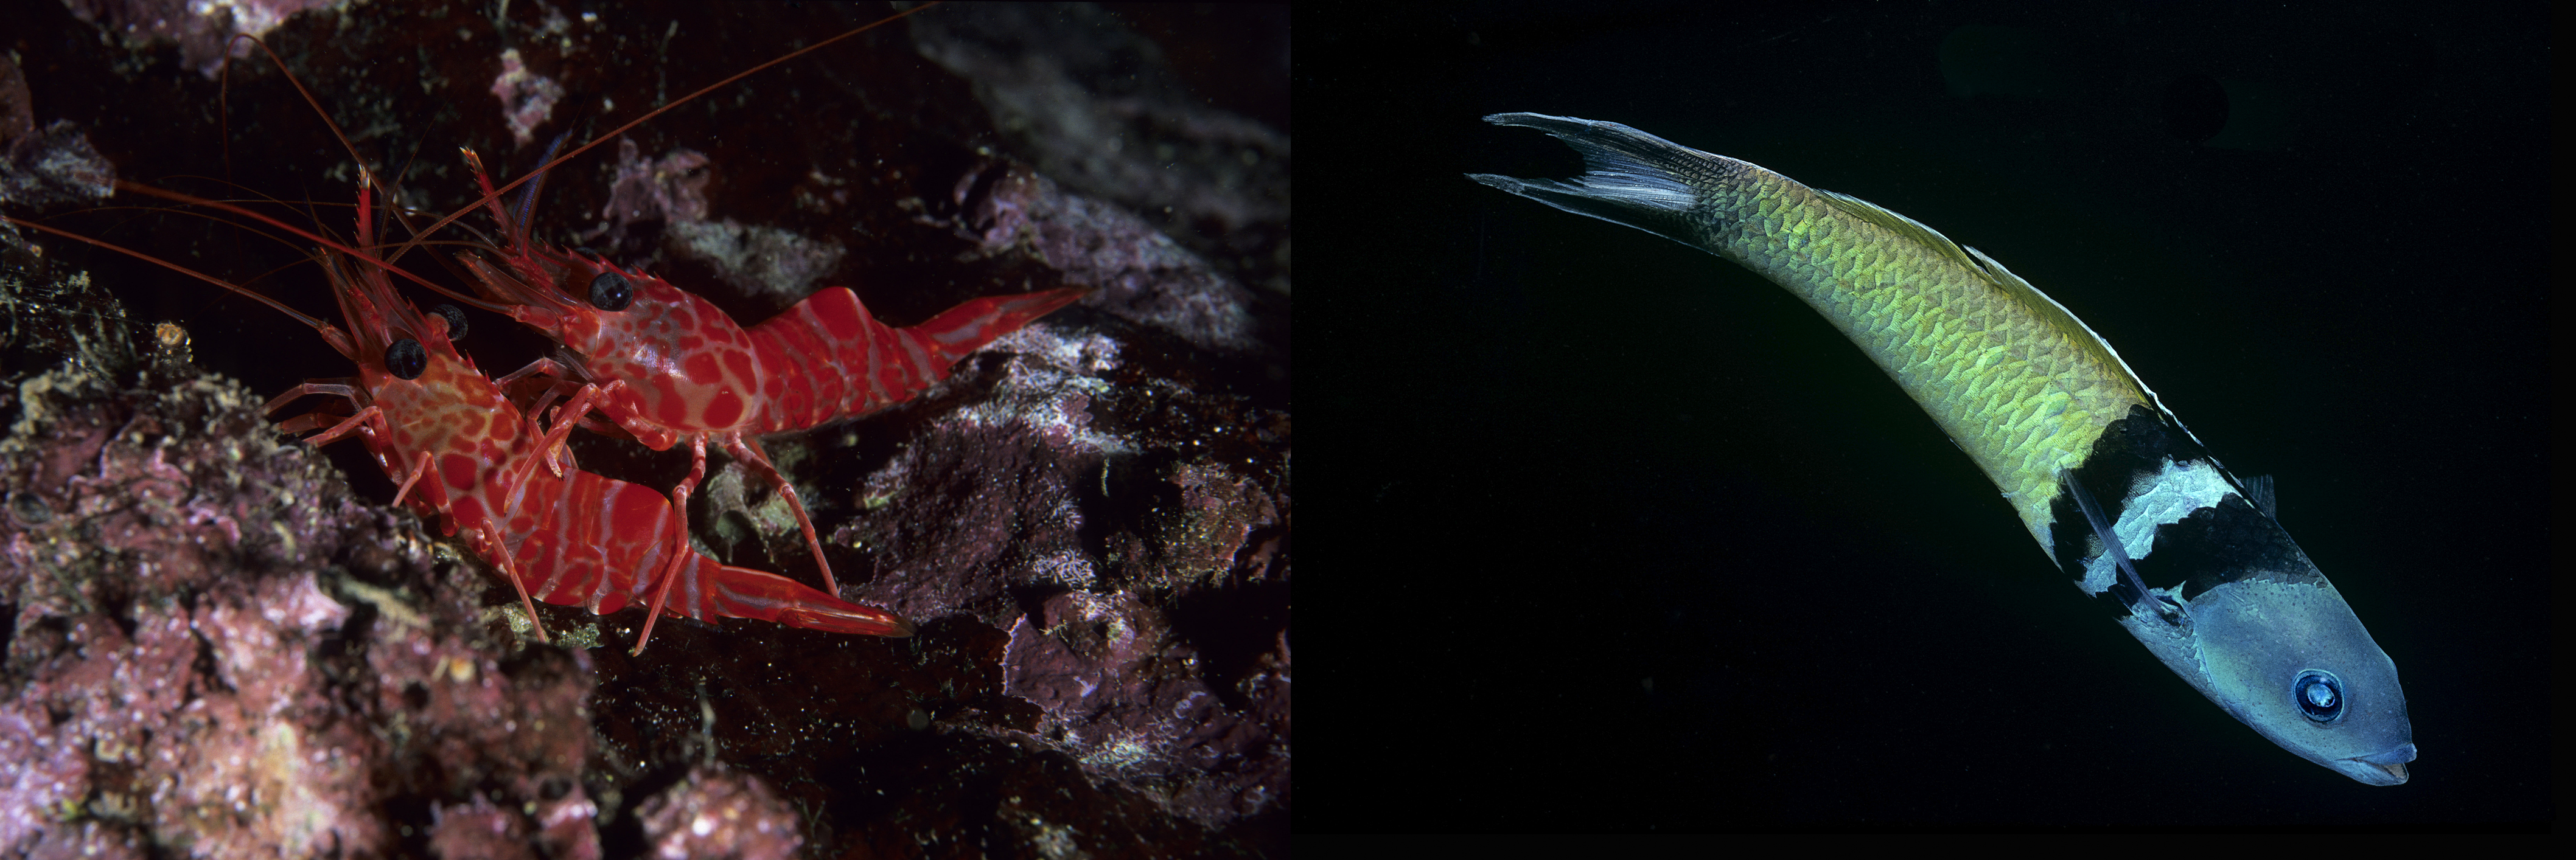 Red night shrimp (Rhynchocinetes rigens; left) are the most popular prey item for lionfish in Bermudian waters. The invasive predators also feast on bluehead wrasse, which remove parasites from other fish species. Photos by Franco Banfi (left) and Paul Starosta/via Getty Images